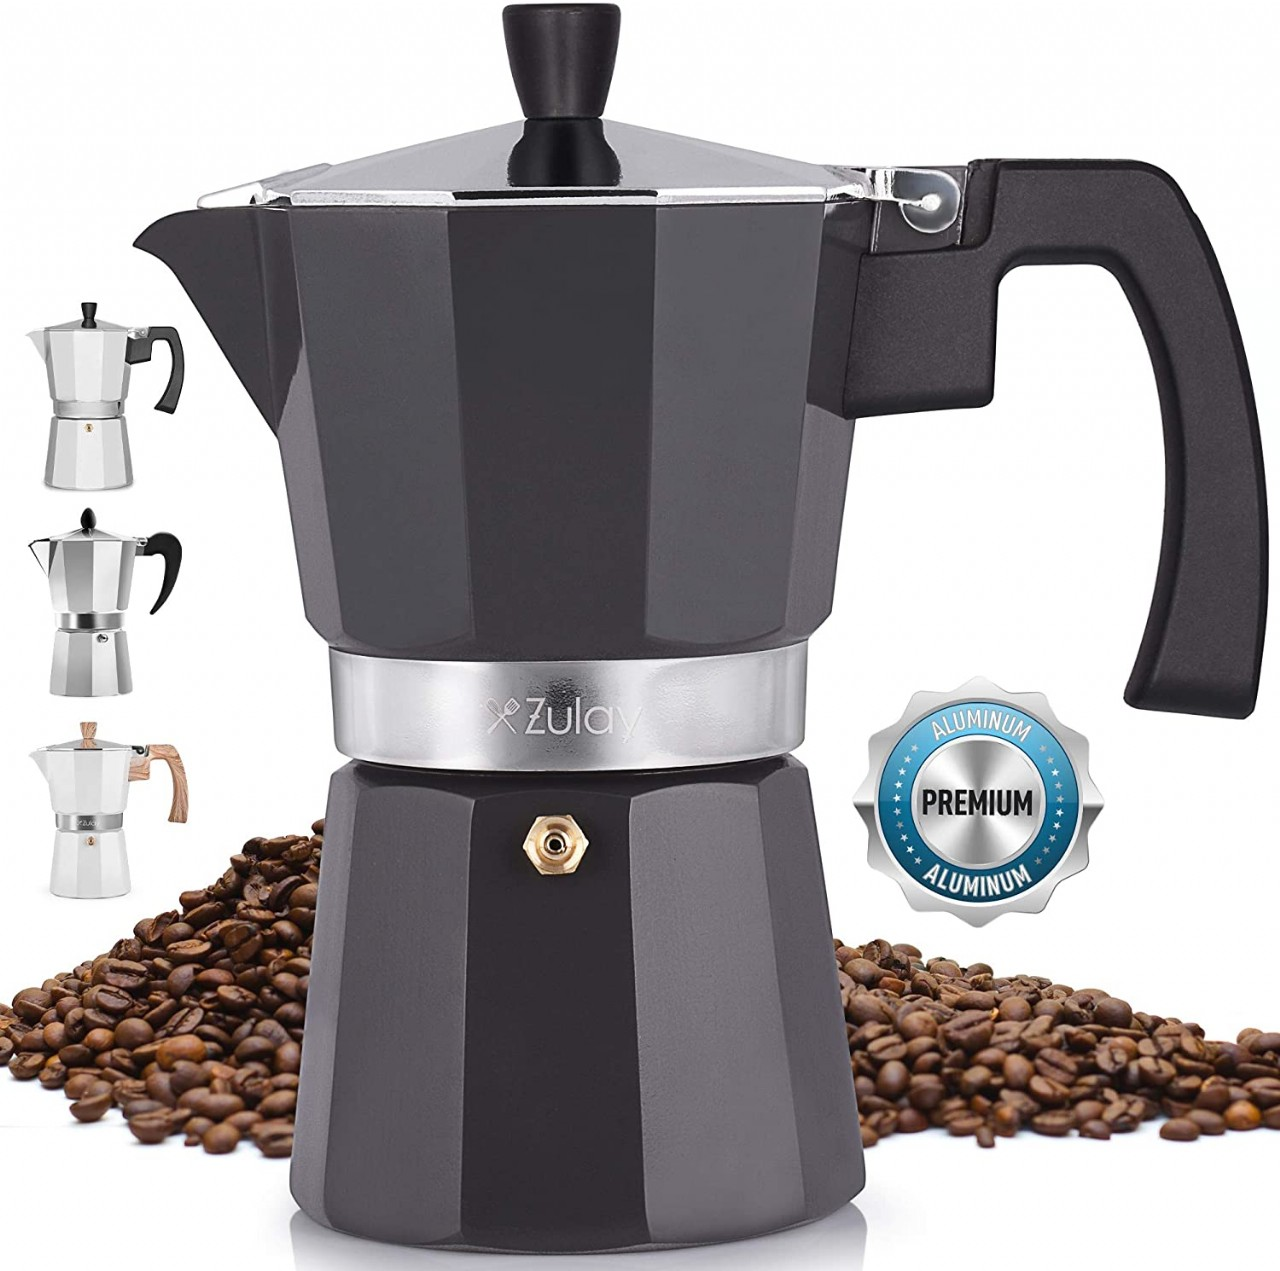 Zulay Classic Stovetop Espresso Maker for Great Flavored Strong Espresso, Classic Italian Style 5.5